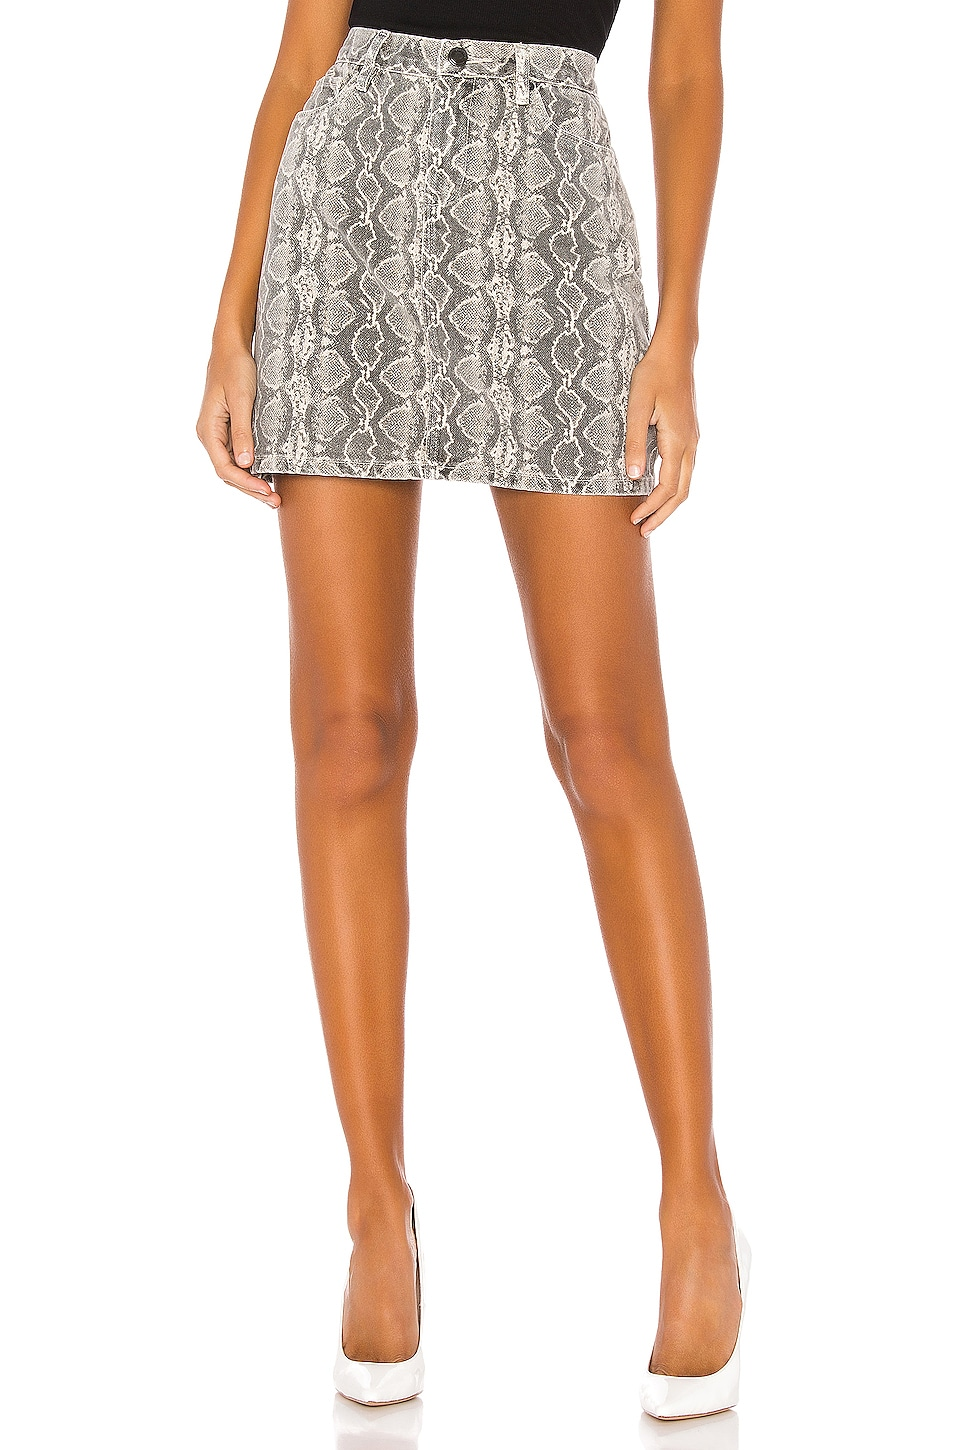 BLANKNYC A-Line High Rise Skirt in Snake Along